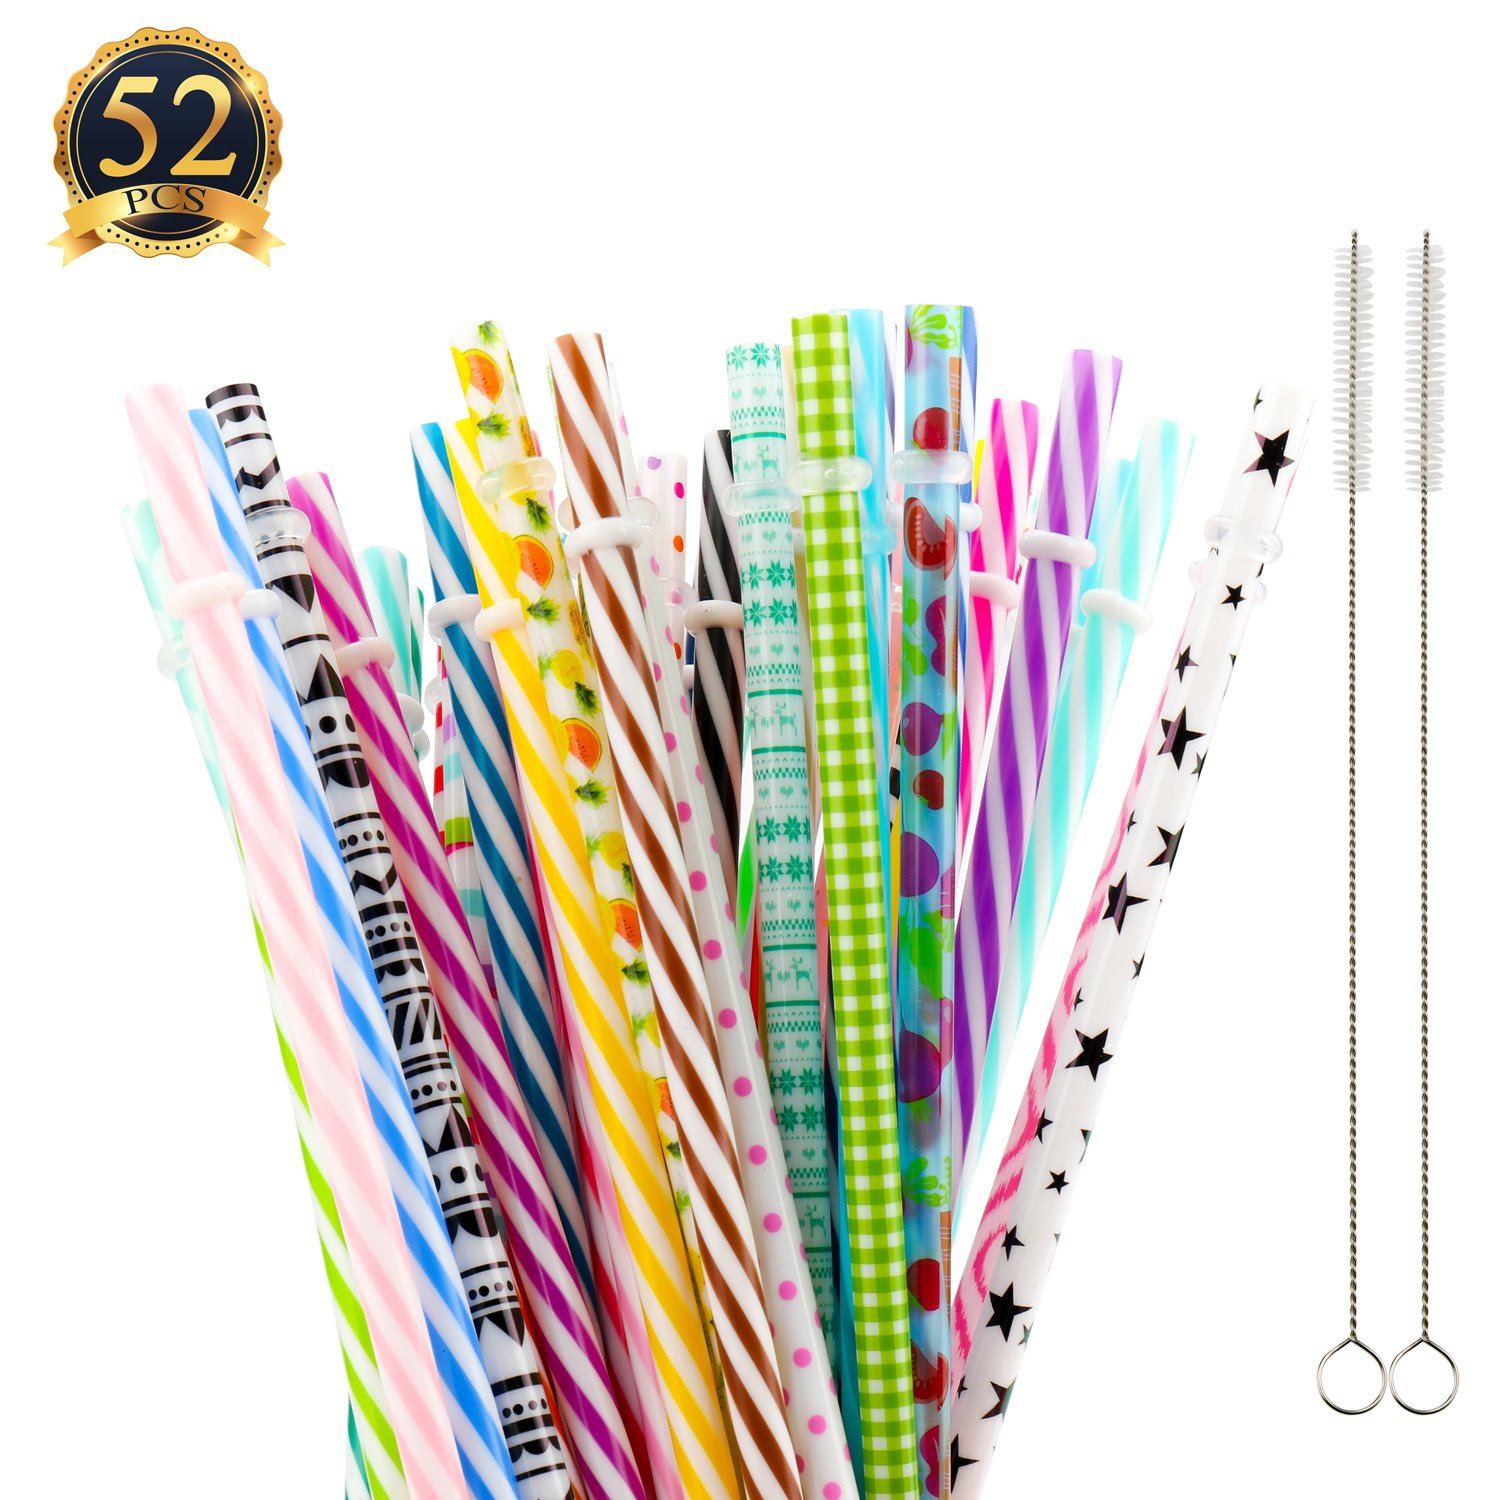 SUBANG 50 Pack Reusable Straws, BPA-Free, 9'' Colorful Hard Plastic Stripe Drinking Straw for Mason Jar Tumbler, Family or Party Use With Cleaning Brush by SUBANG